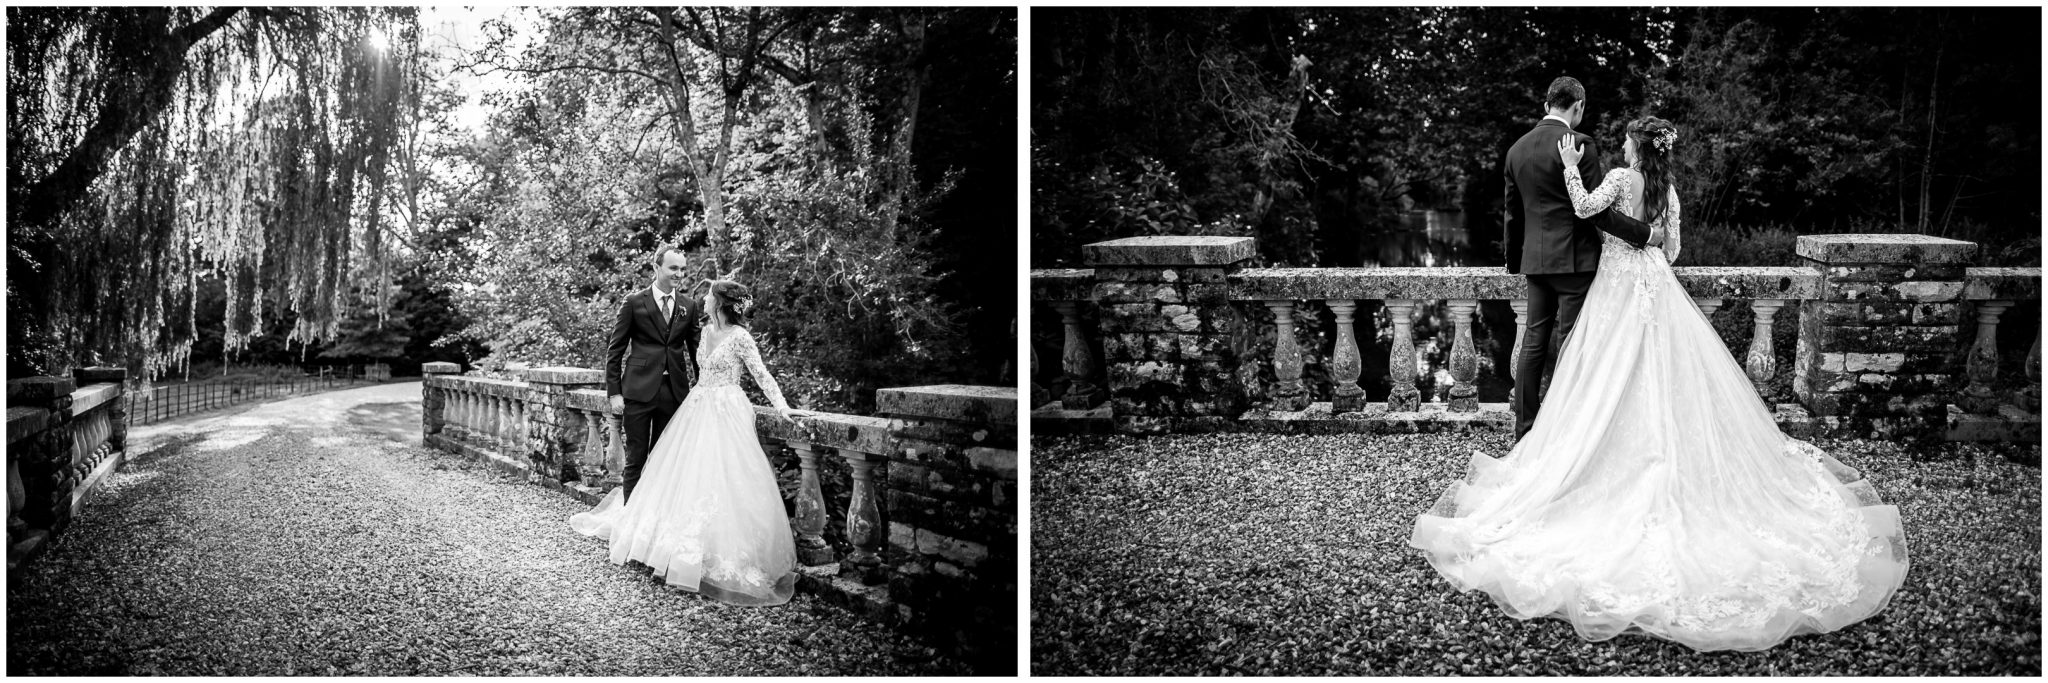 Black and white couple portraits with bride and groom